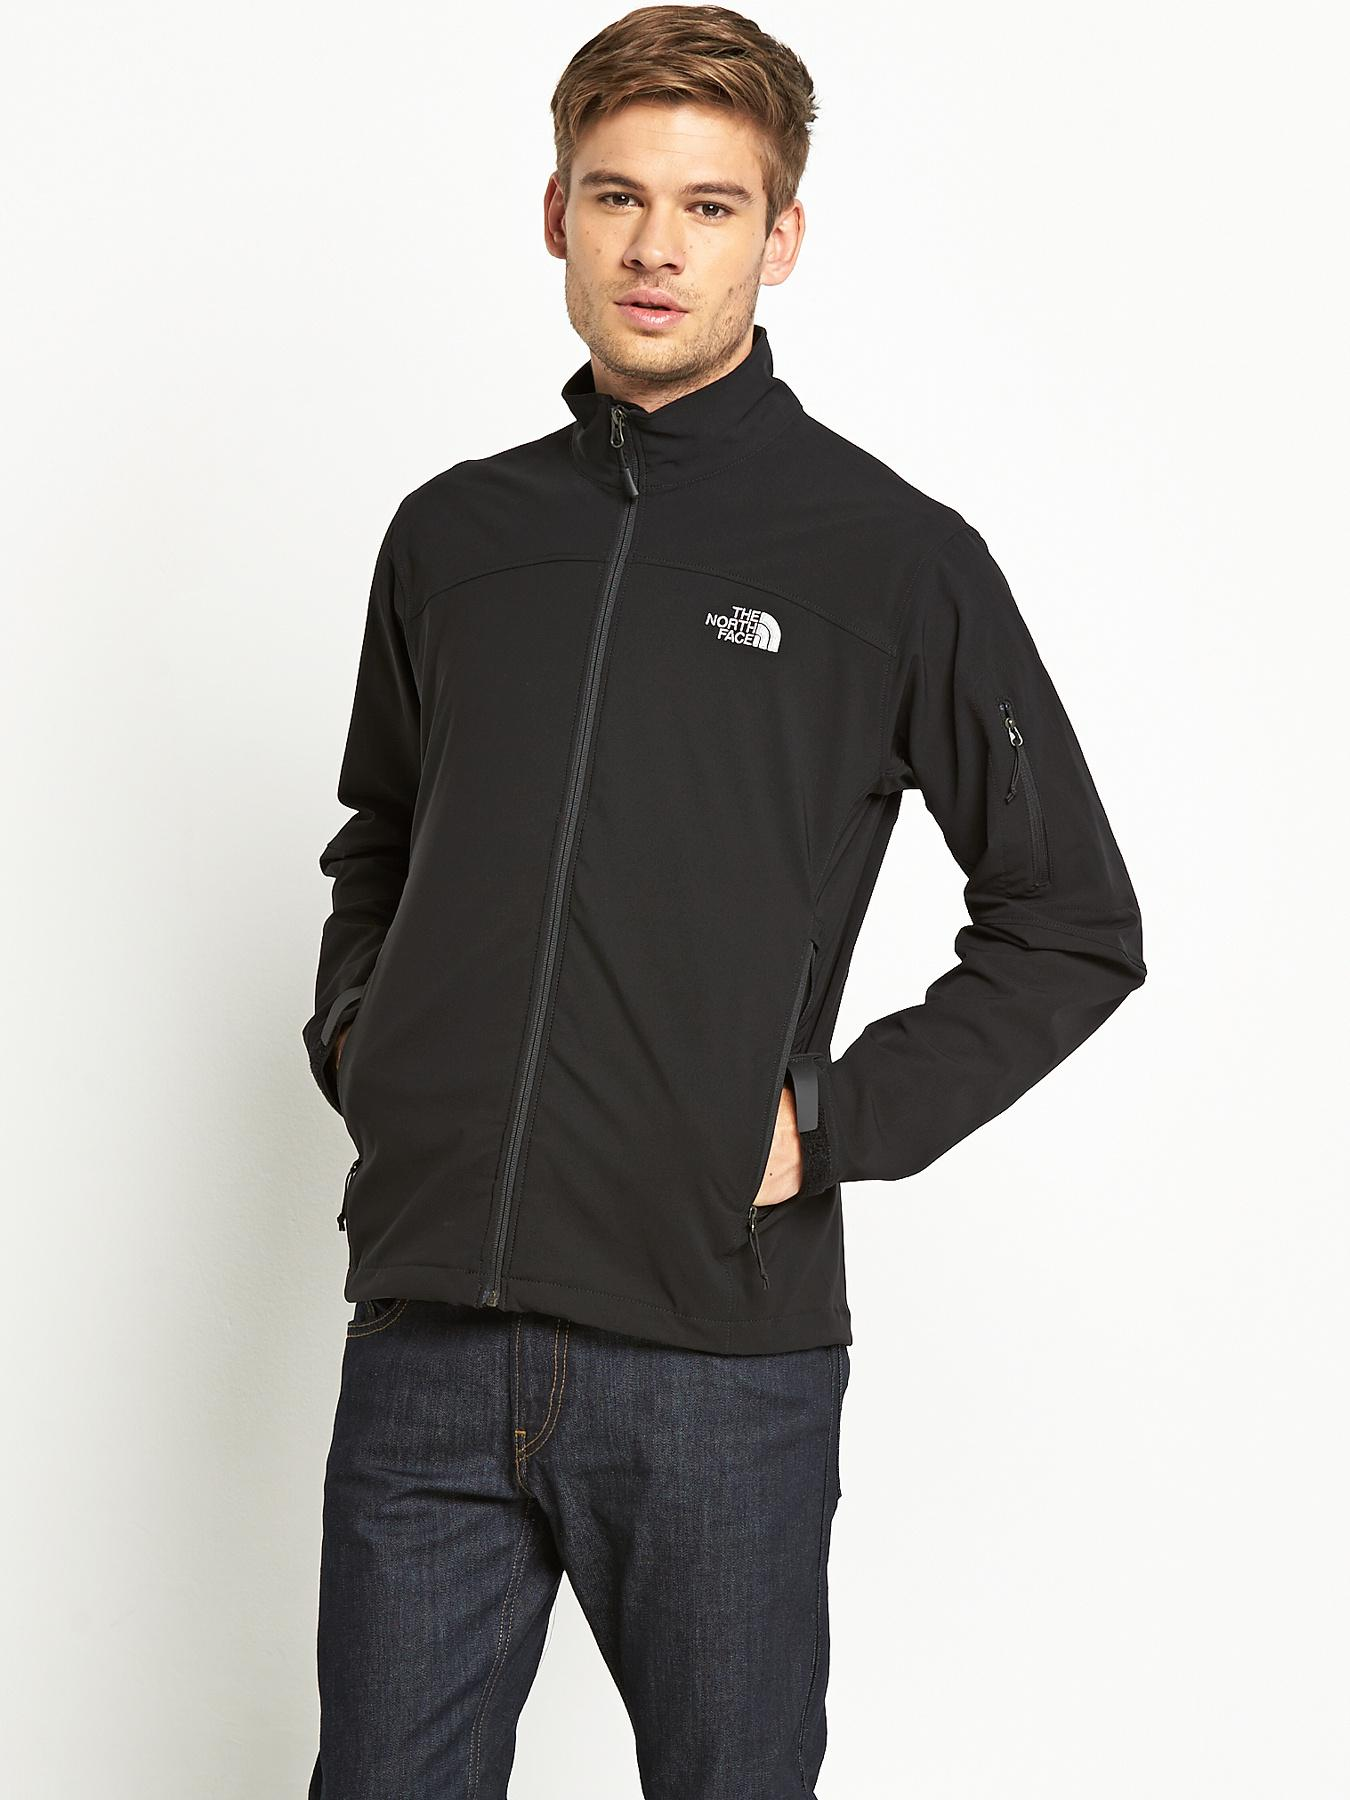 THE NORTH FACE Mens Ceresio Jacket - Black, Black